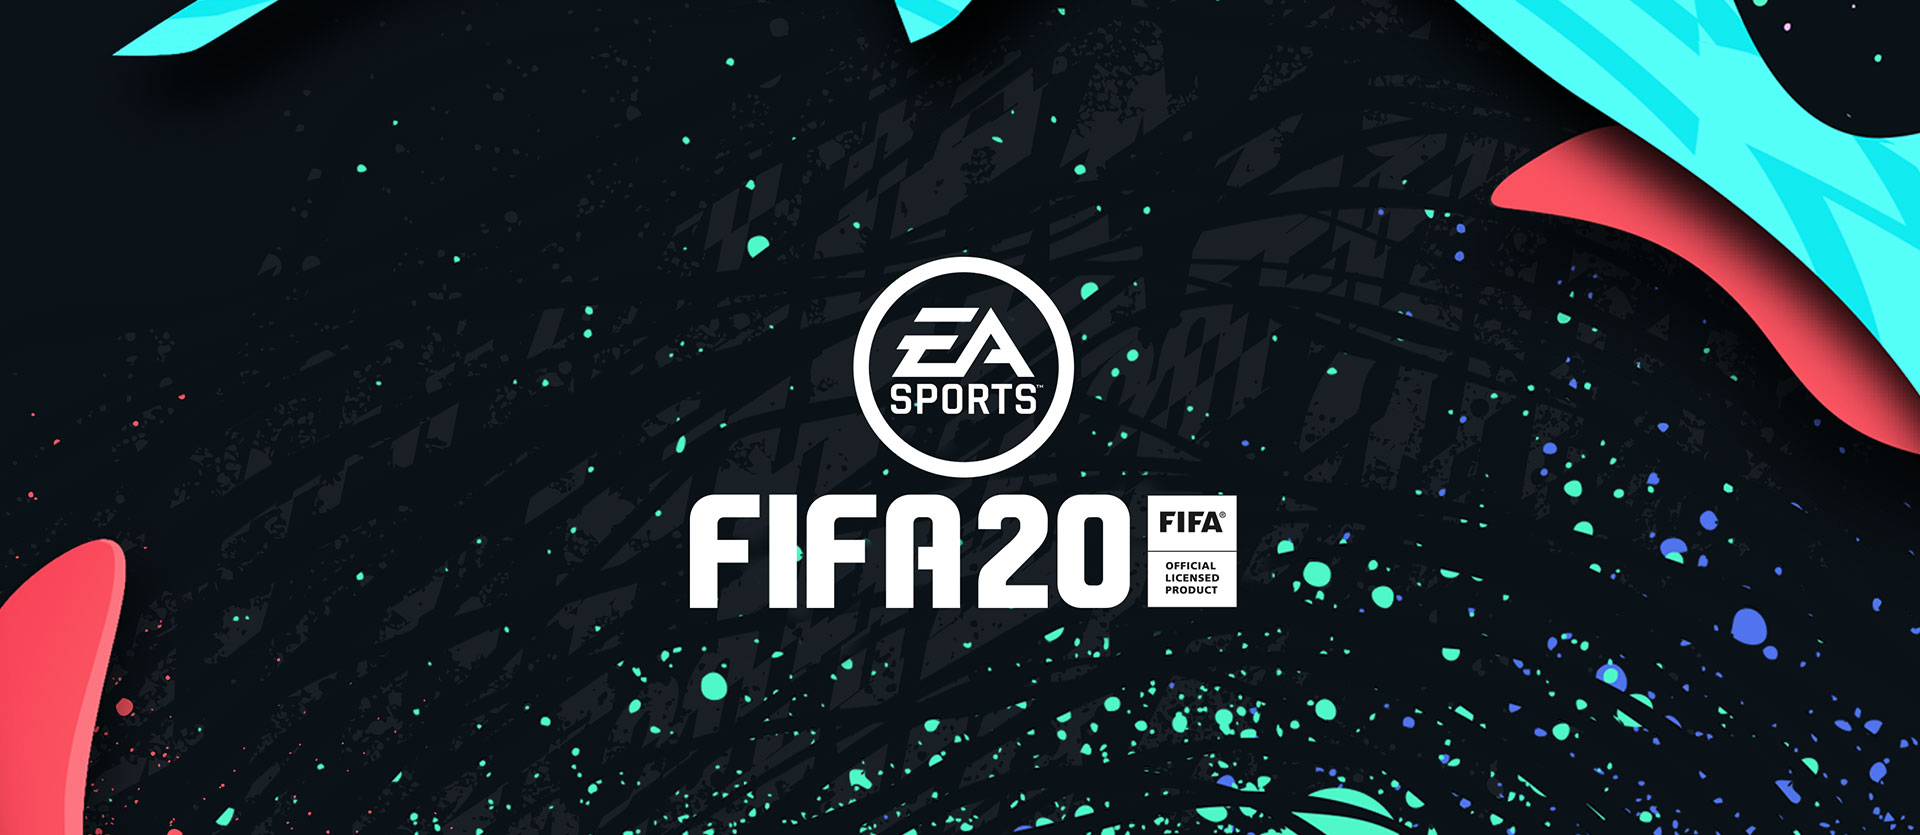 EA Sports Logo, FIFA 20, FIFA Official Licensed Product, bunten Linien und Splatter